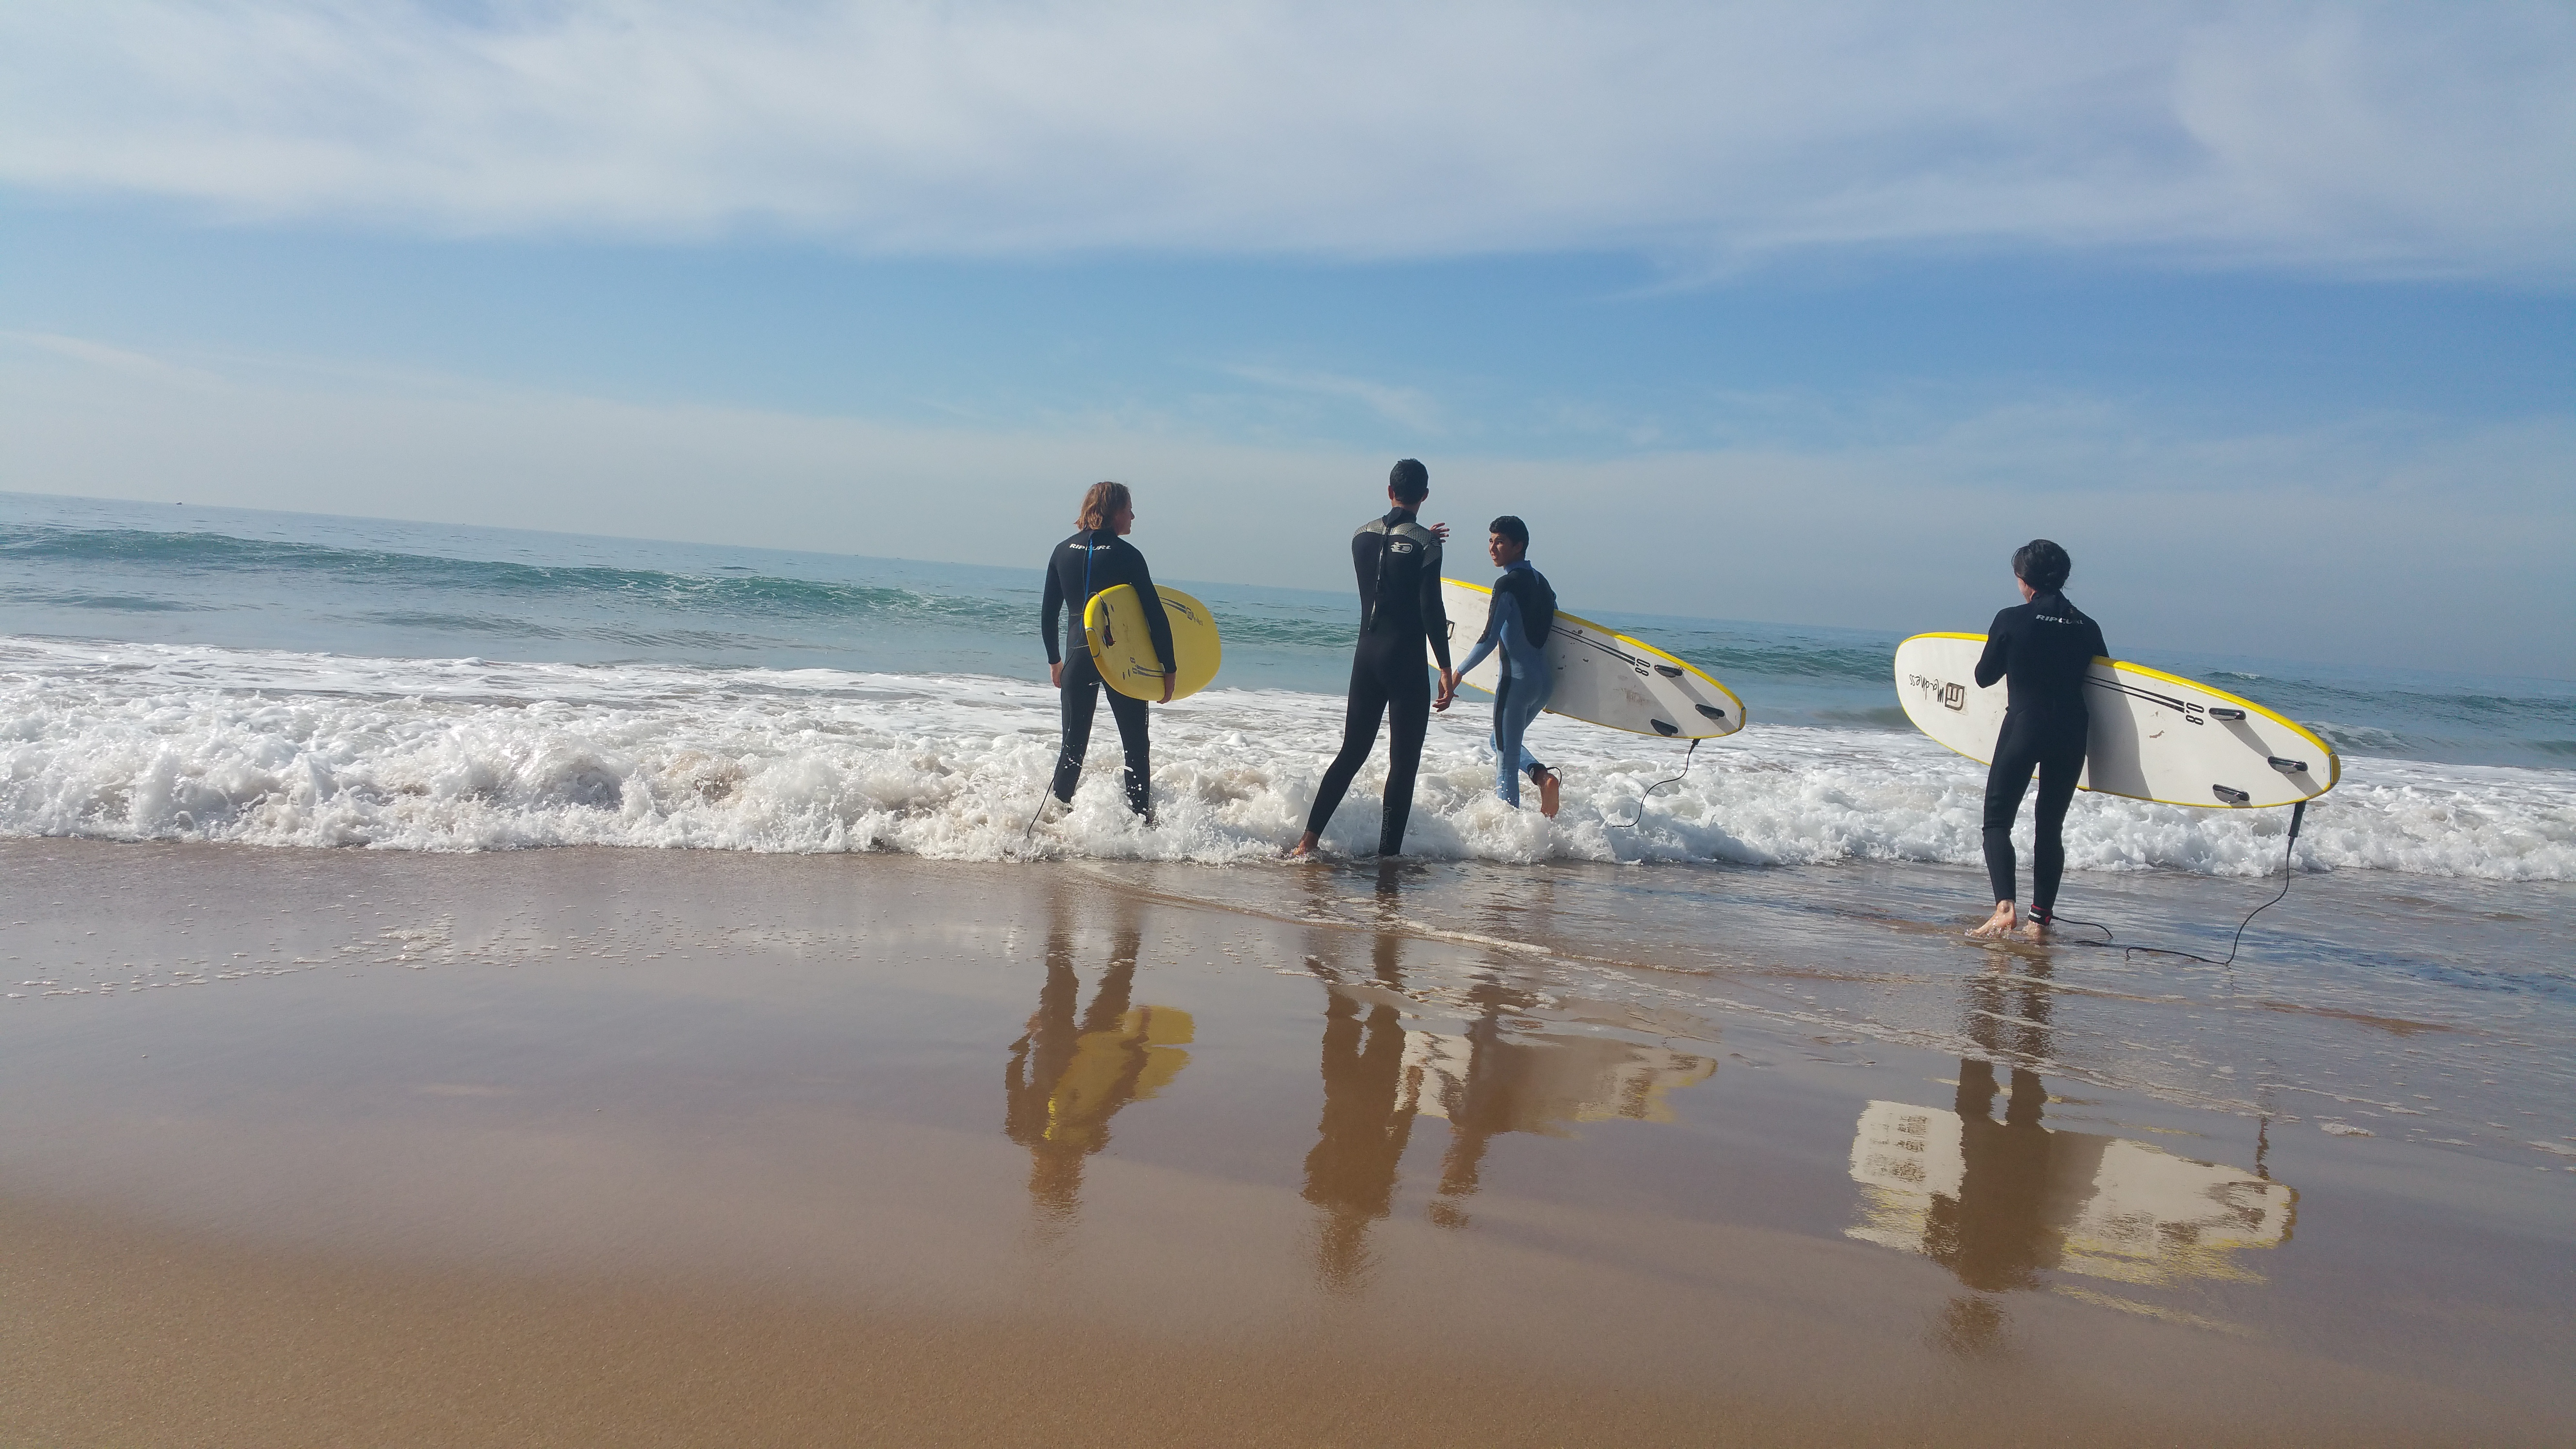 Time for surf lessons